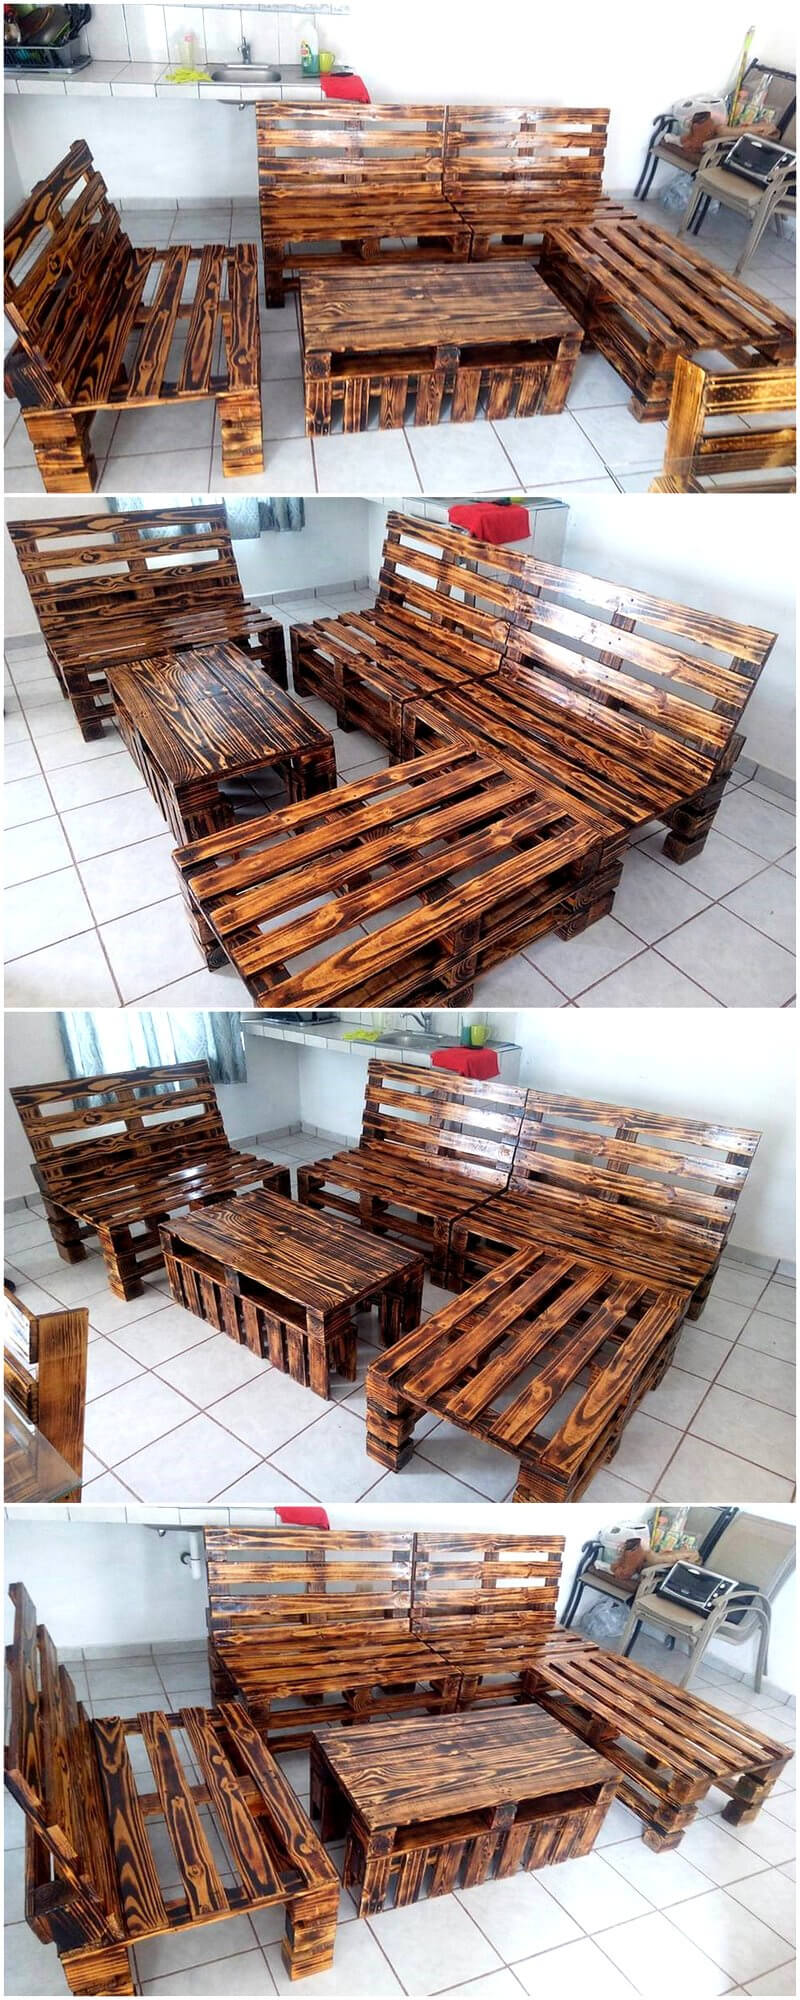 Some Fresh Ideas For Wood Pallets Reshaping Wood Pallet Furniture # Muebles Pailets